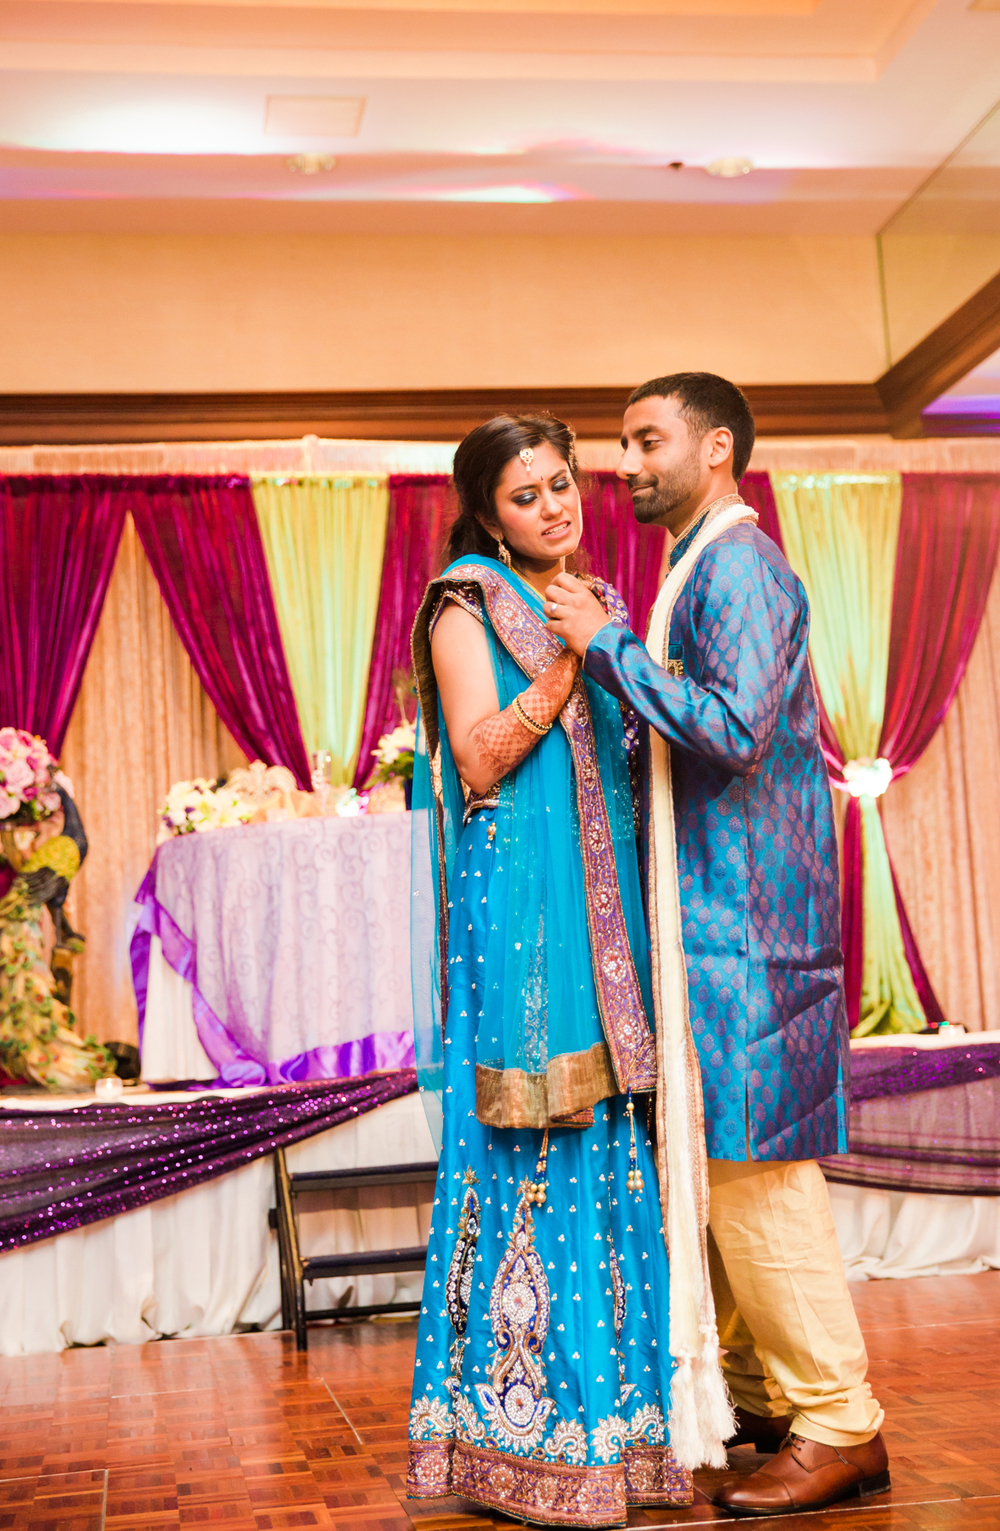 Hindu_Wedding_Washington_DC_Wedding_Photographer_P&S-197.JPG